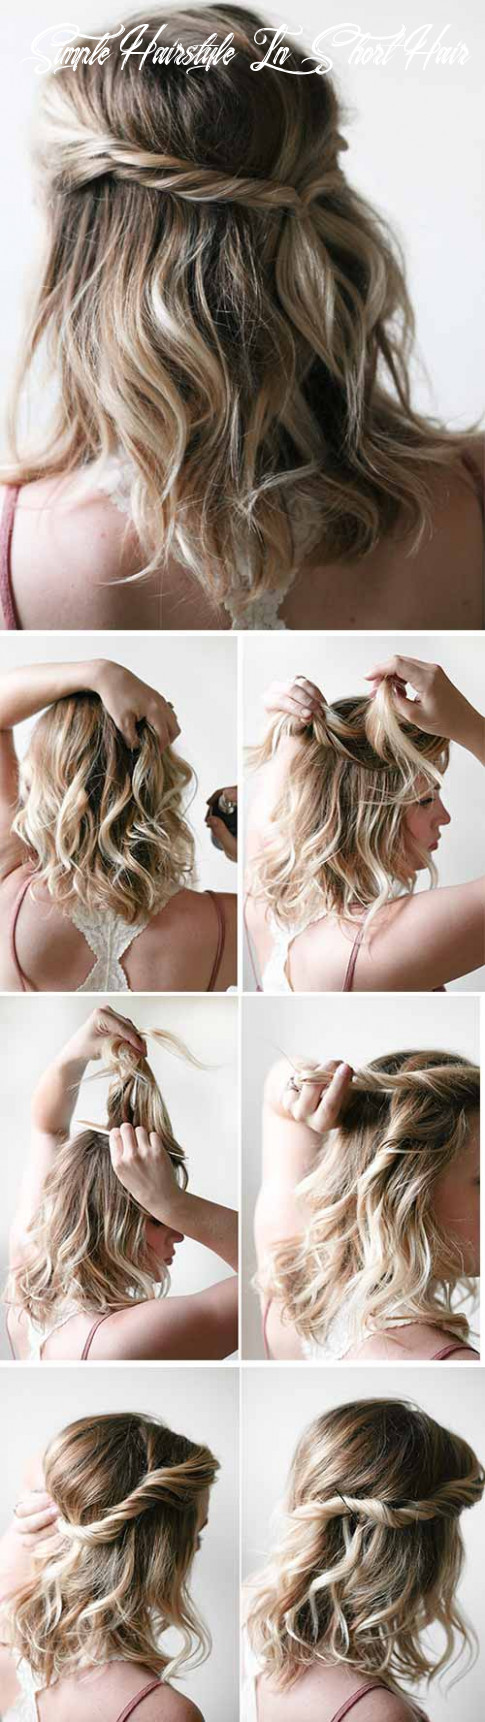 8 incredible diy short hairstyles a step by step guide simple hairstyle in short hair